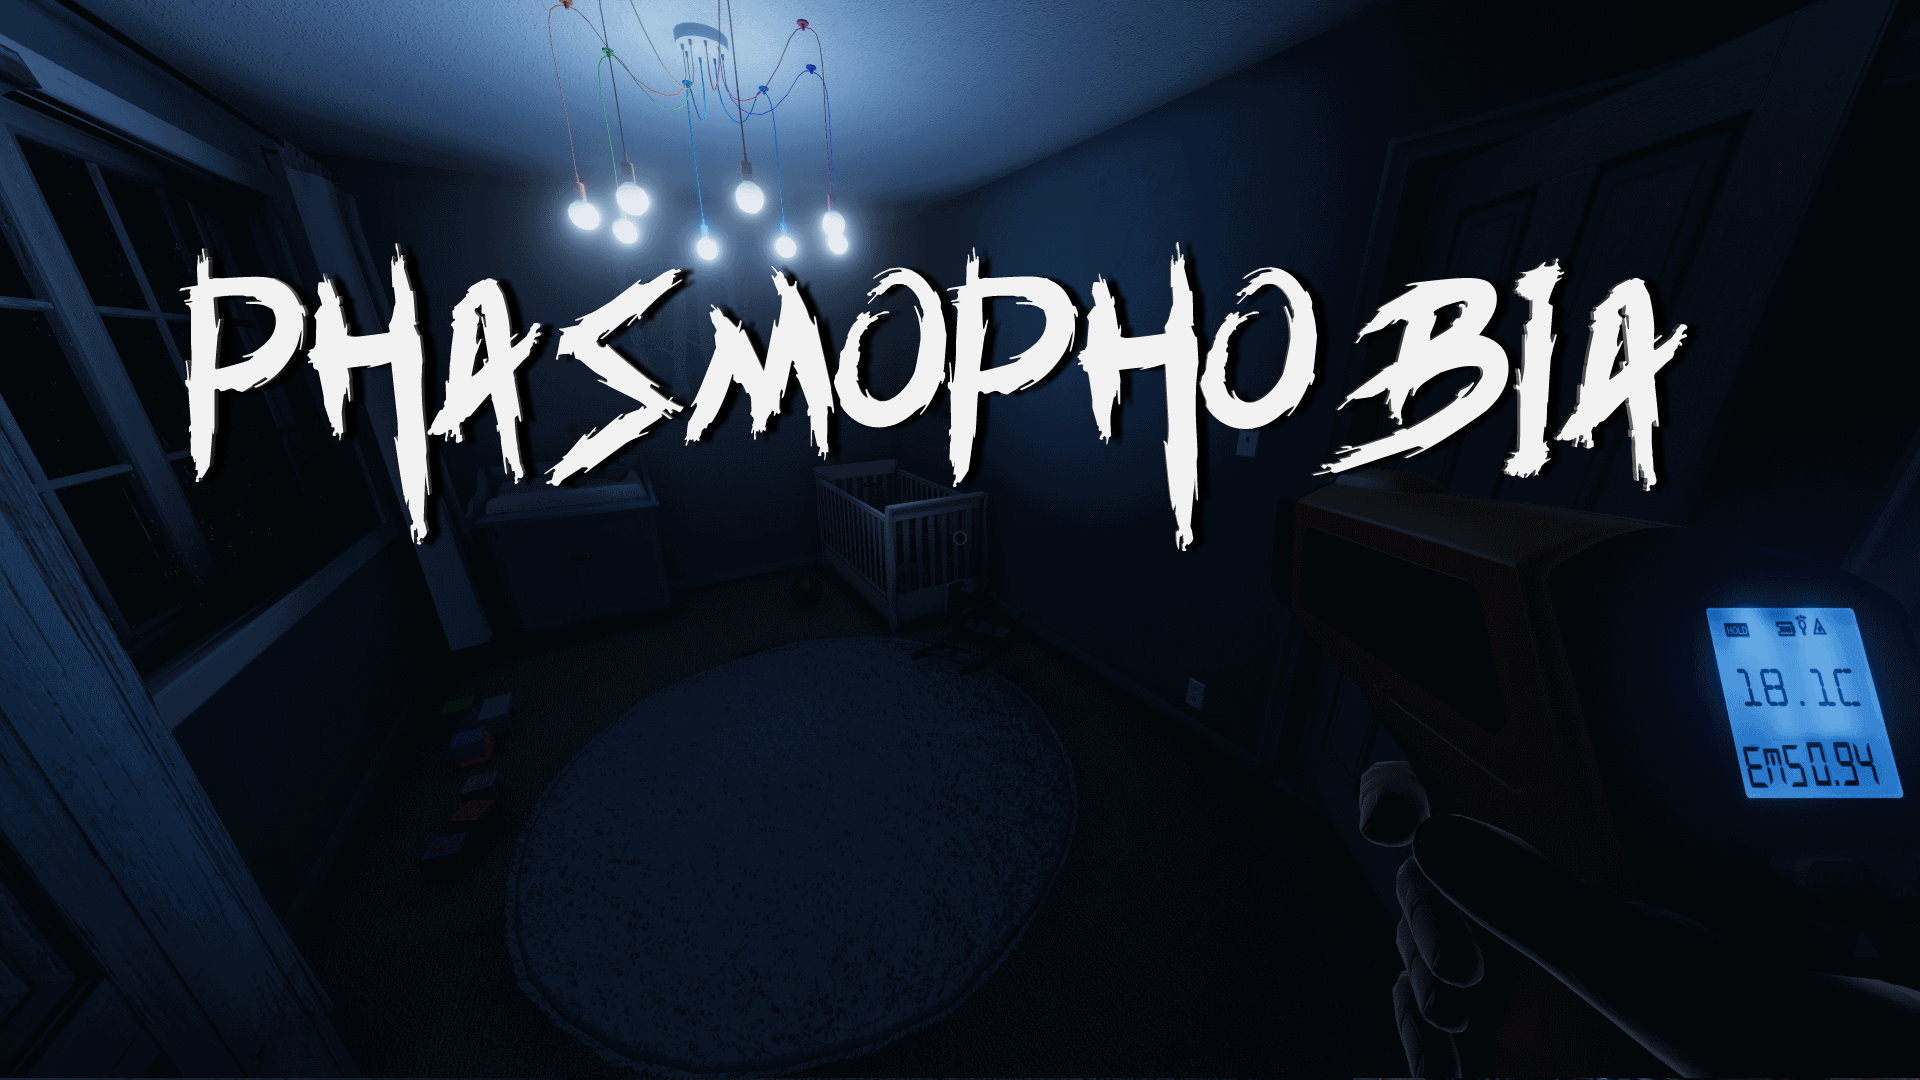 Der Horror! Hoshi testet Phasmophobia in Virtual Reality